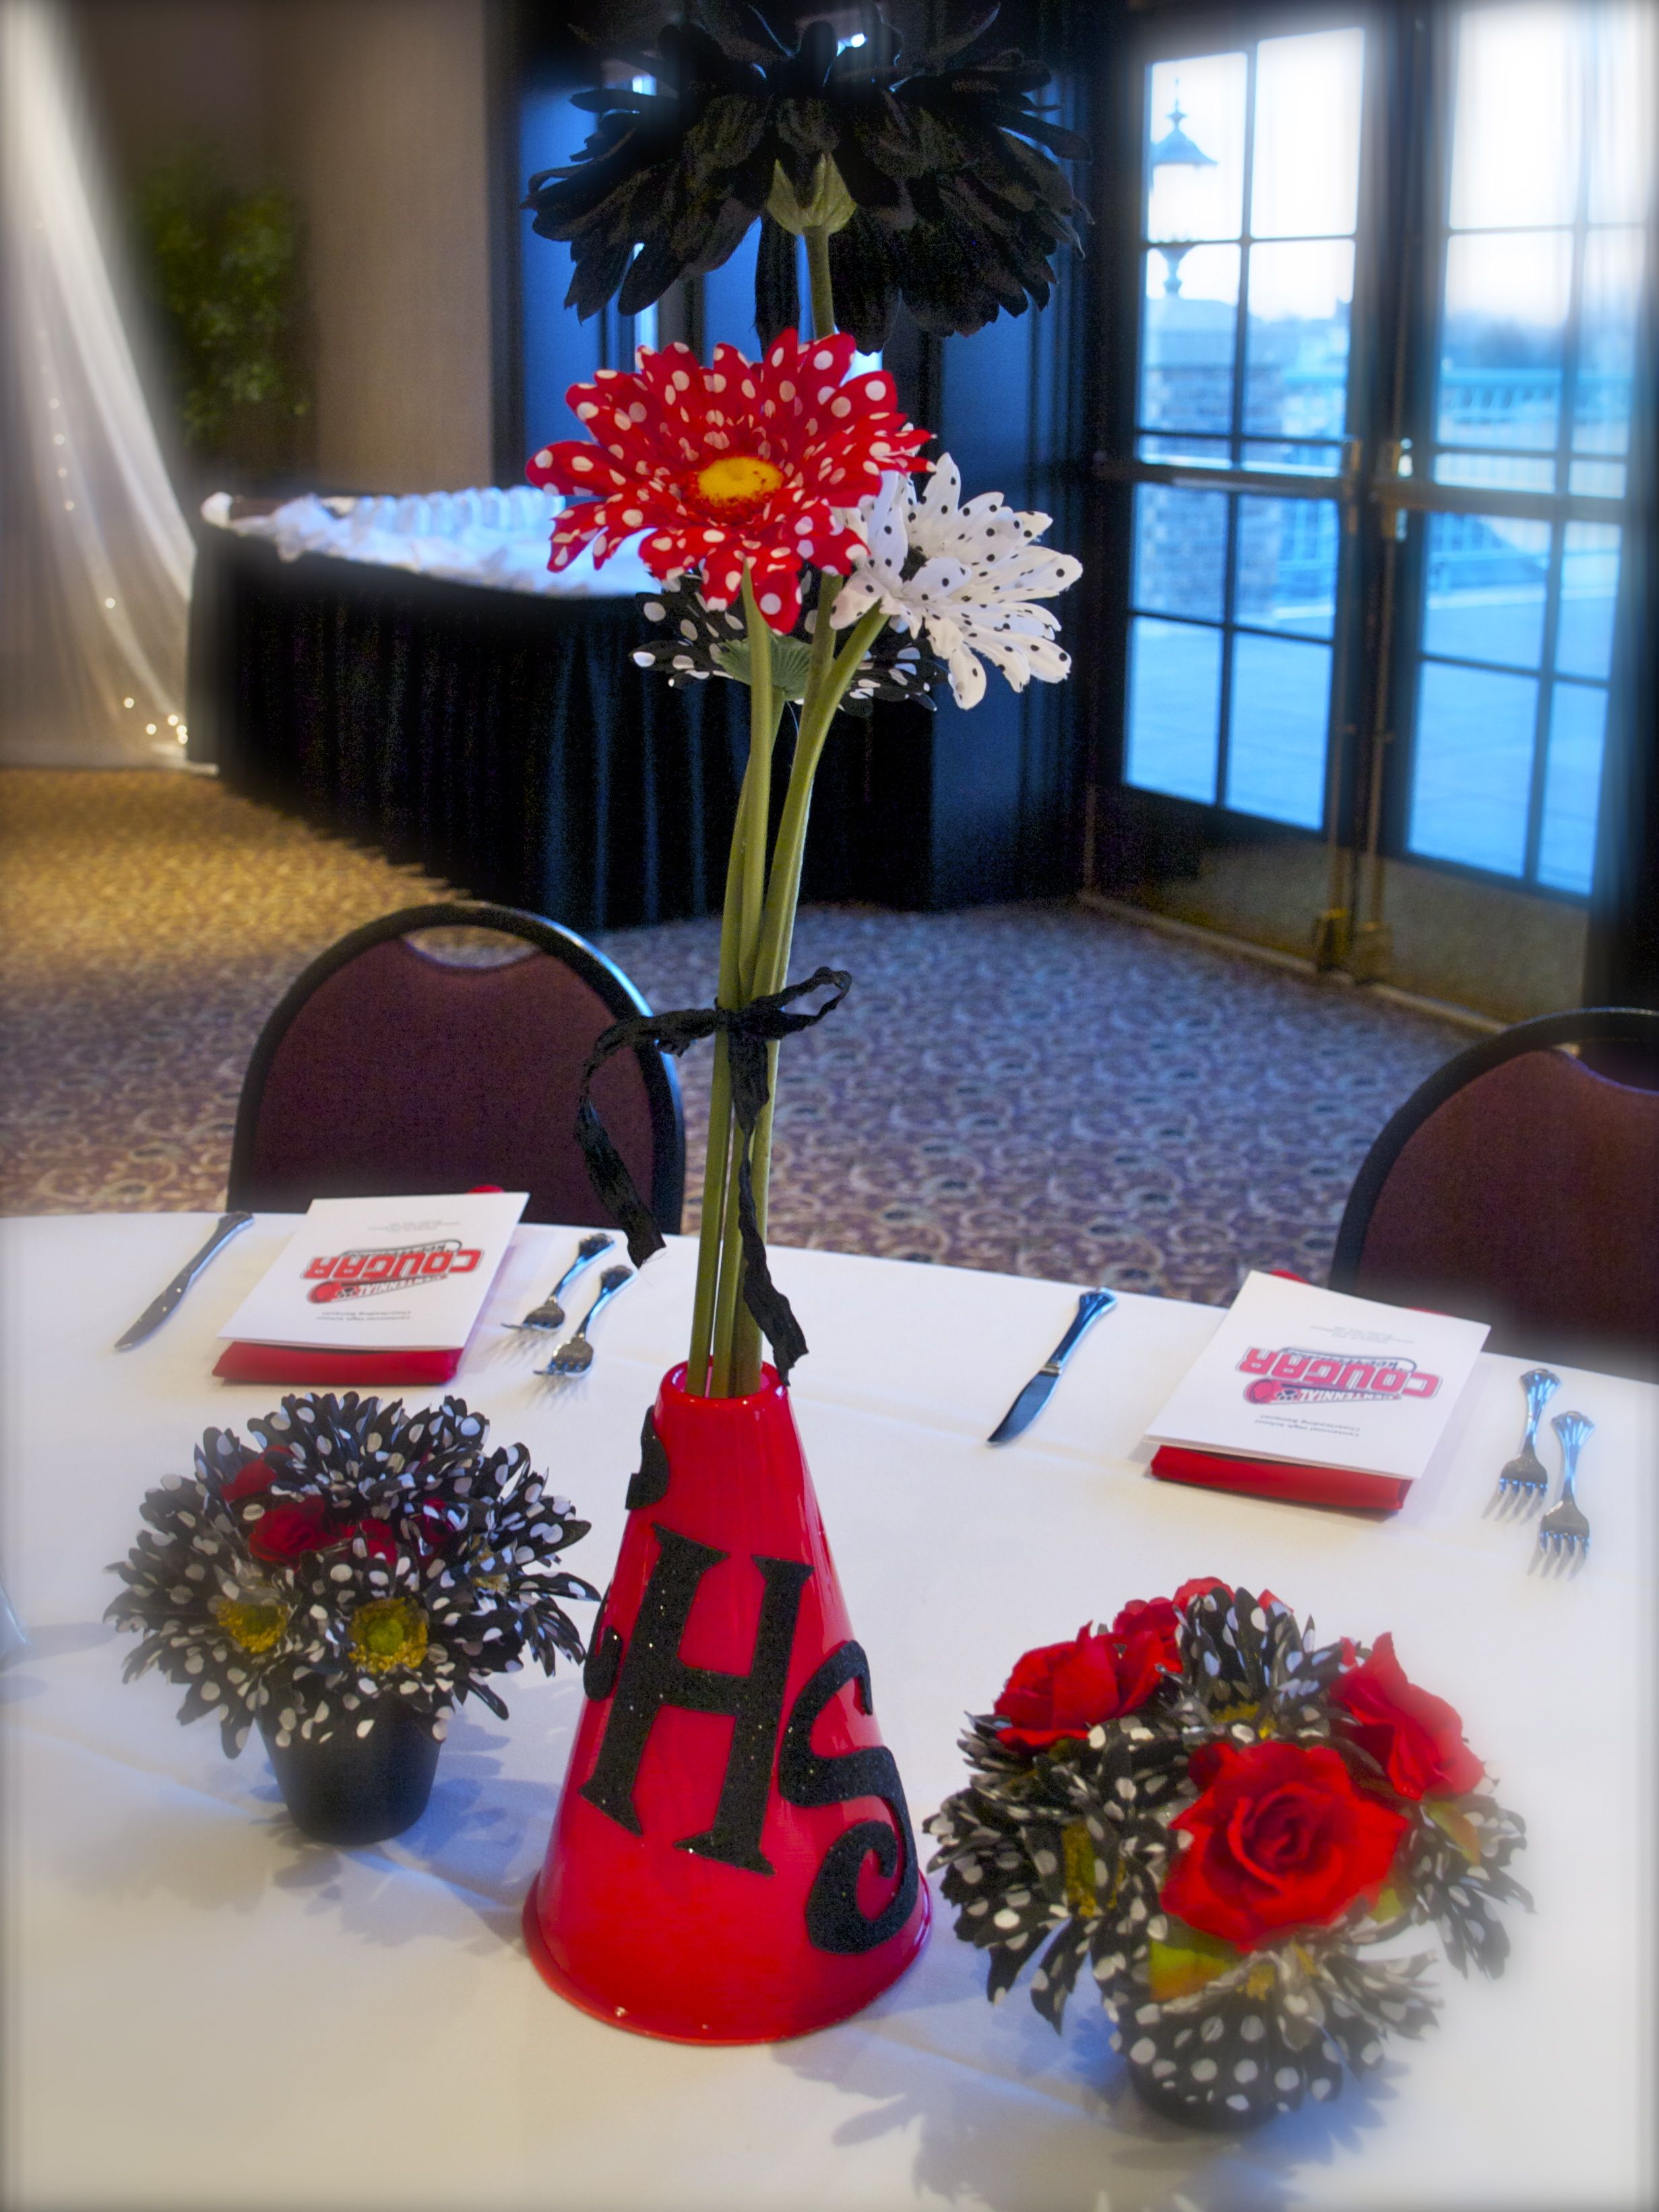 Centennial cheer banquet centerpiece red black and white for Cheerleading decorations